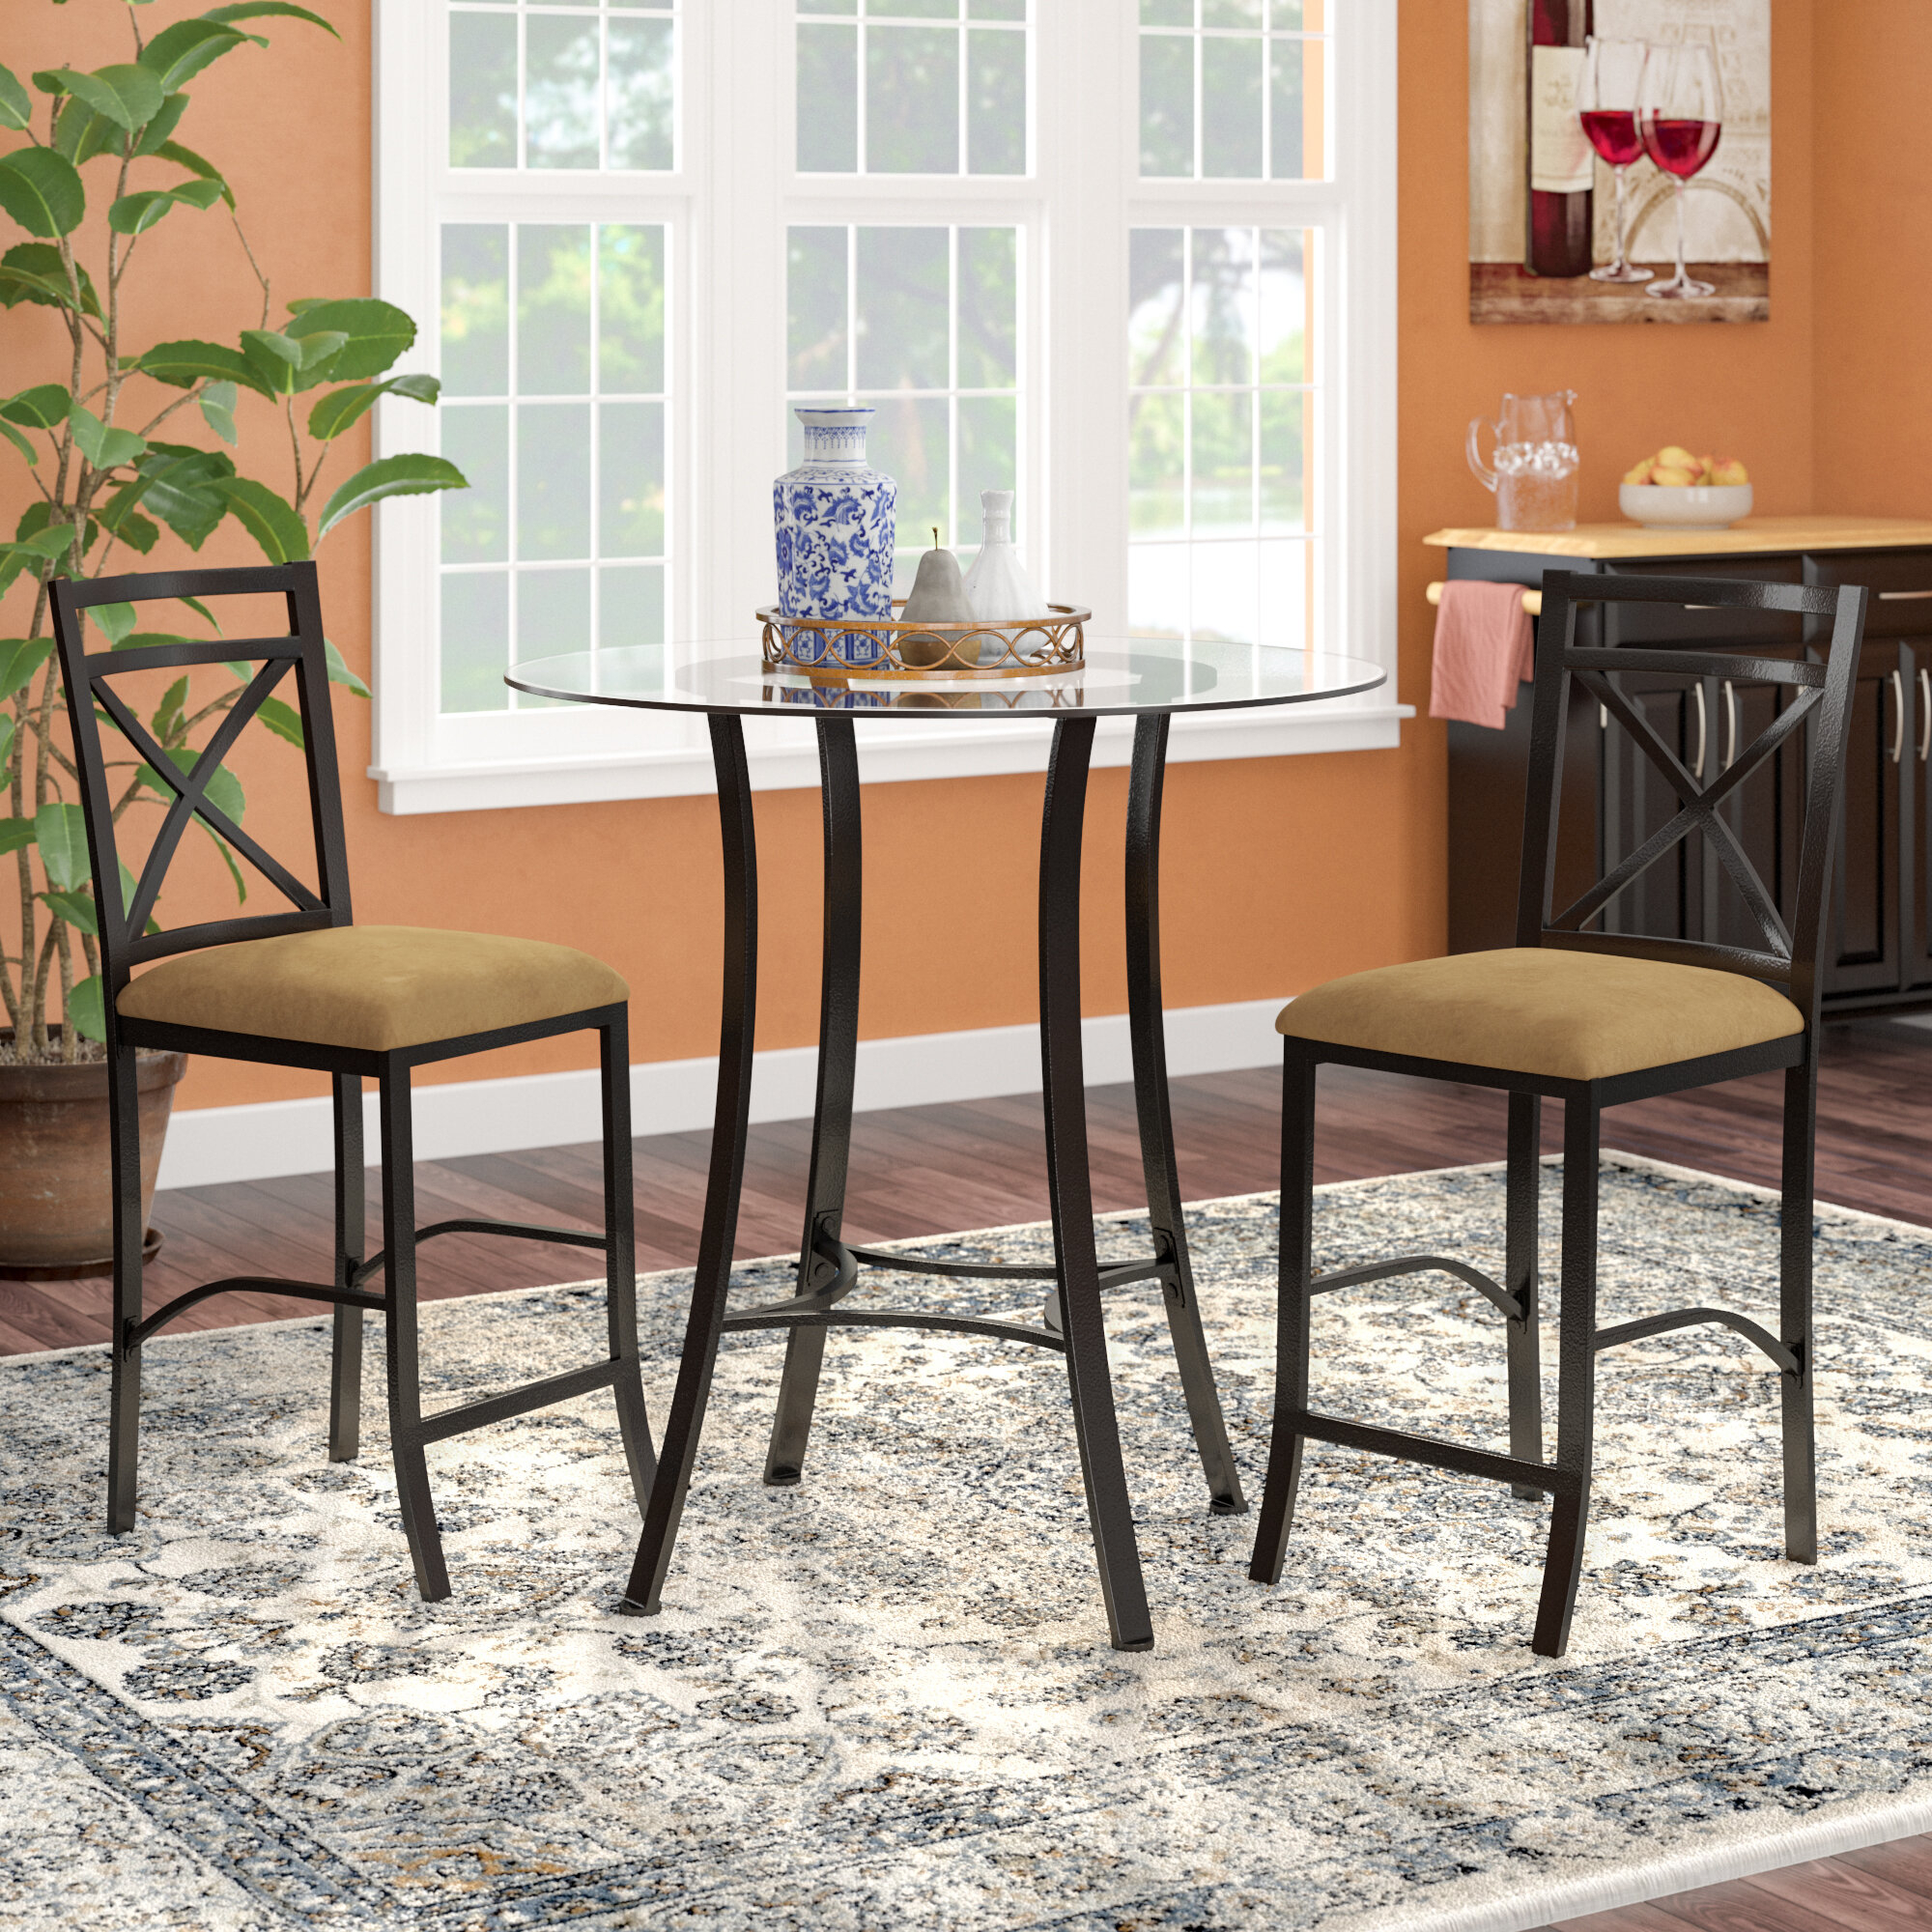 Details About Winston Porter Saleh 3 Piece Counter Height Dining Set With Regard To 2017 Mitzel 3 Piece Dining Sets (Image 4 of 20)